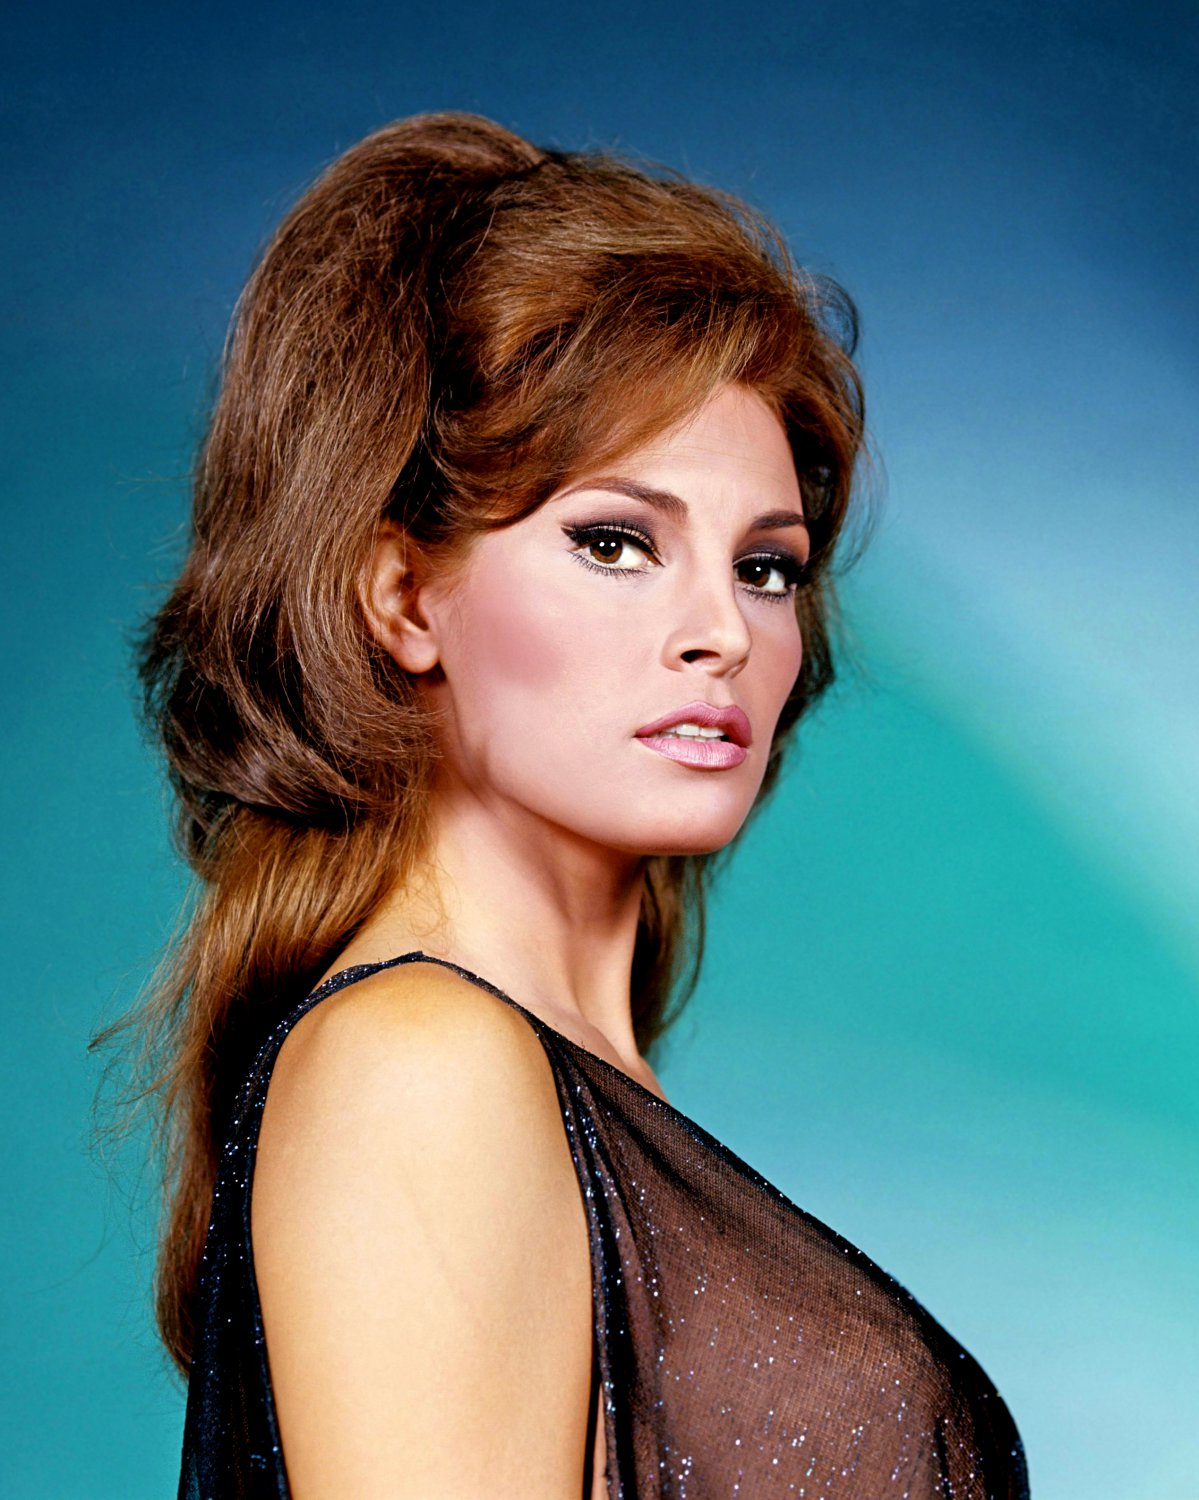 RAQUEL WELCH ACTRESS AND SEX-SYMBOL - 8X10 PUBLICITY PHOTO (SP-006)